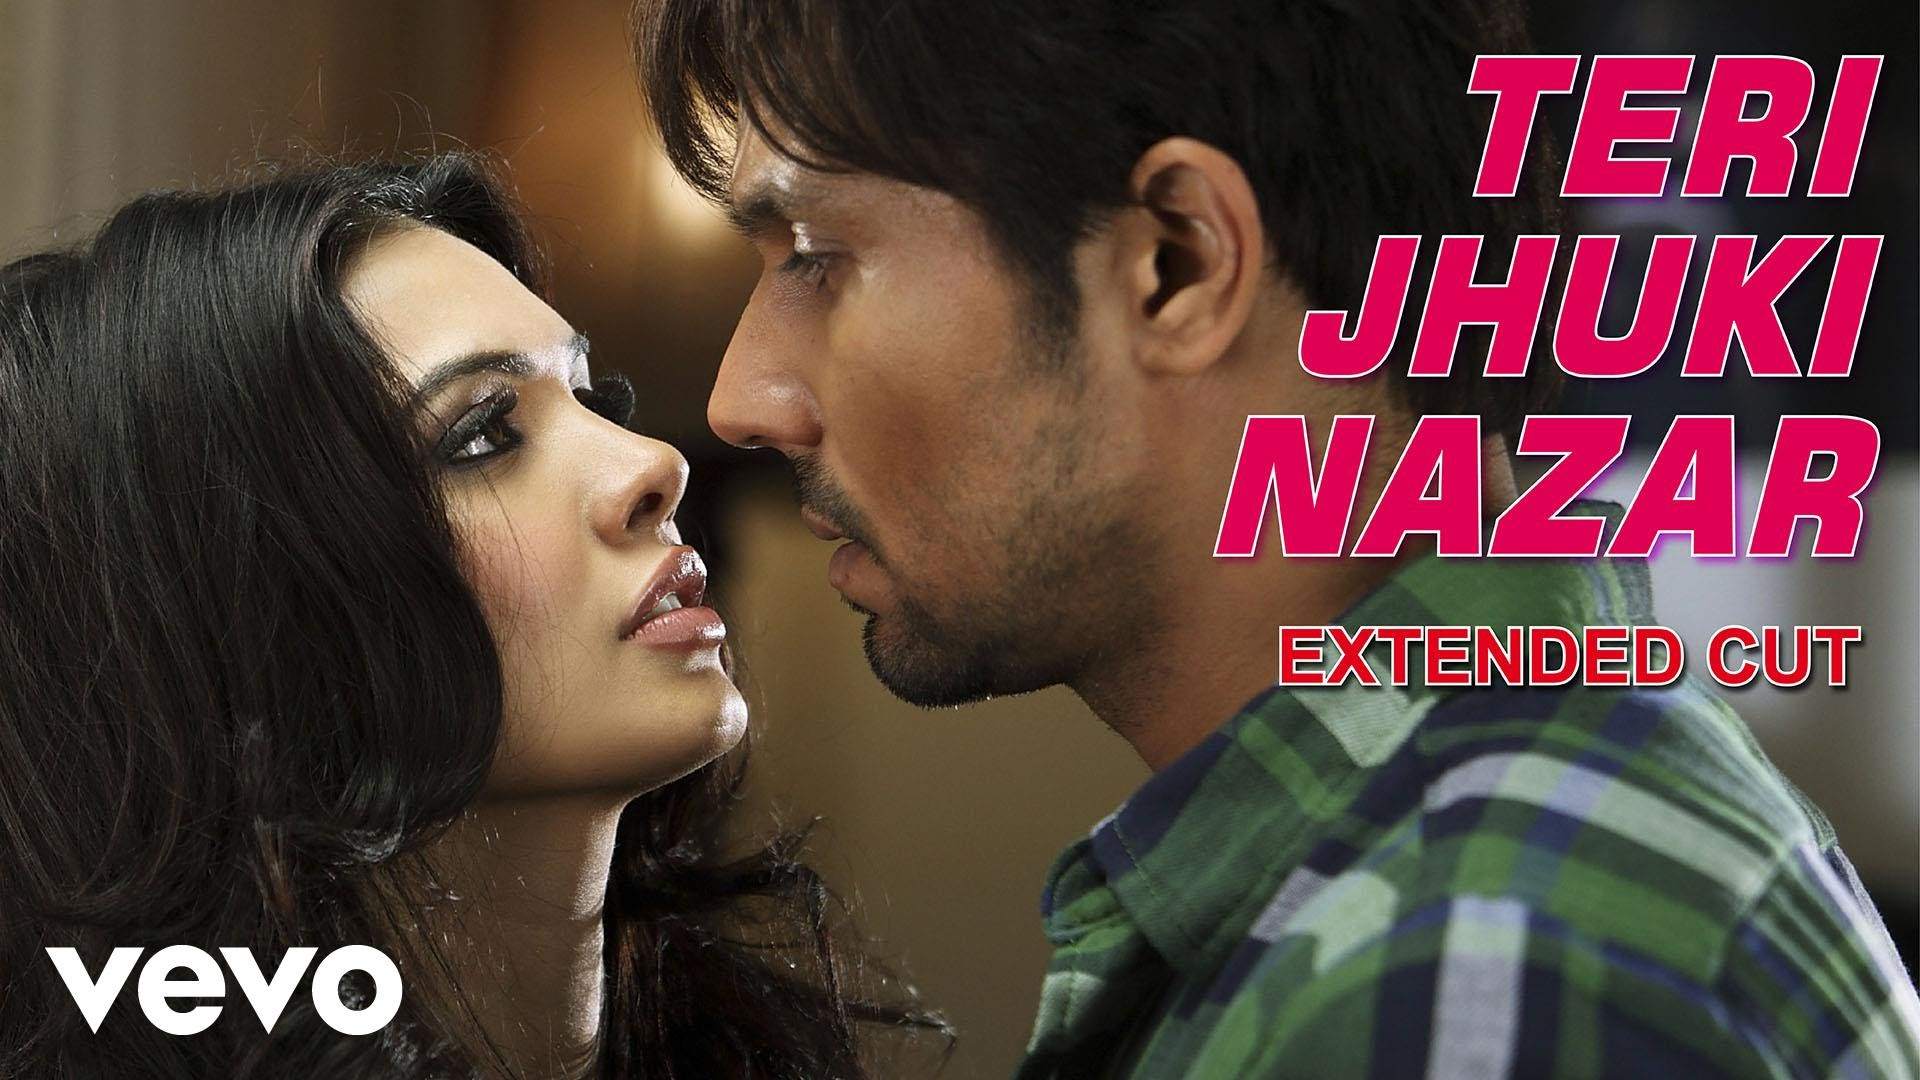 Murder 3 video songs free download mp3 gopegg.